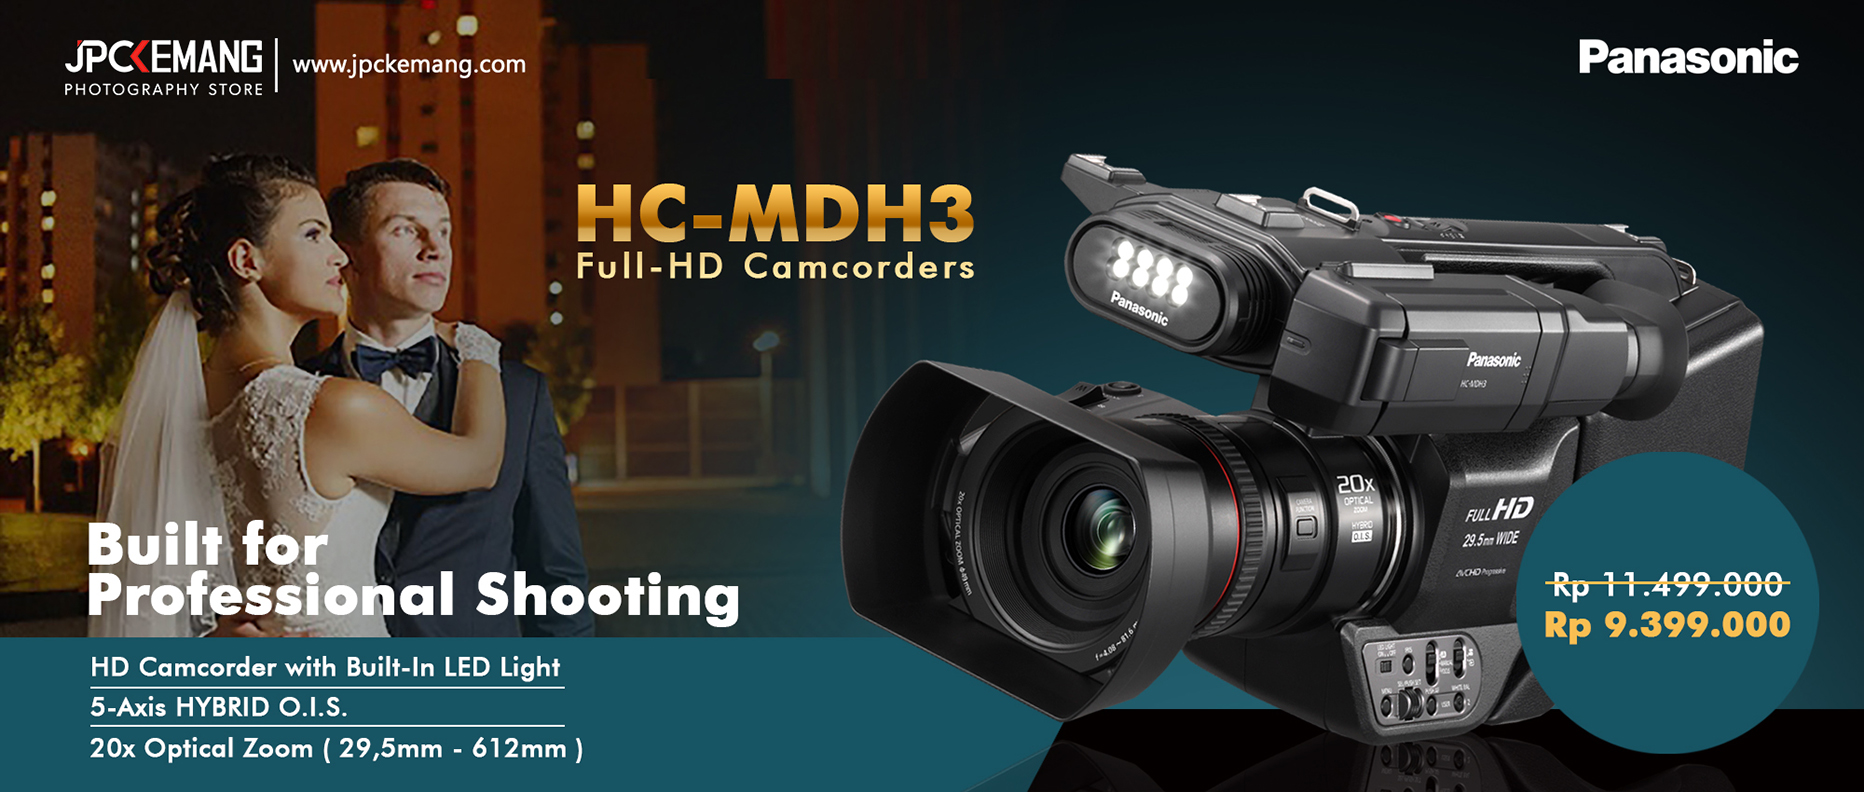 Panasonic HC MDH3 Full HD Camcorders